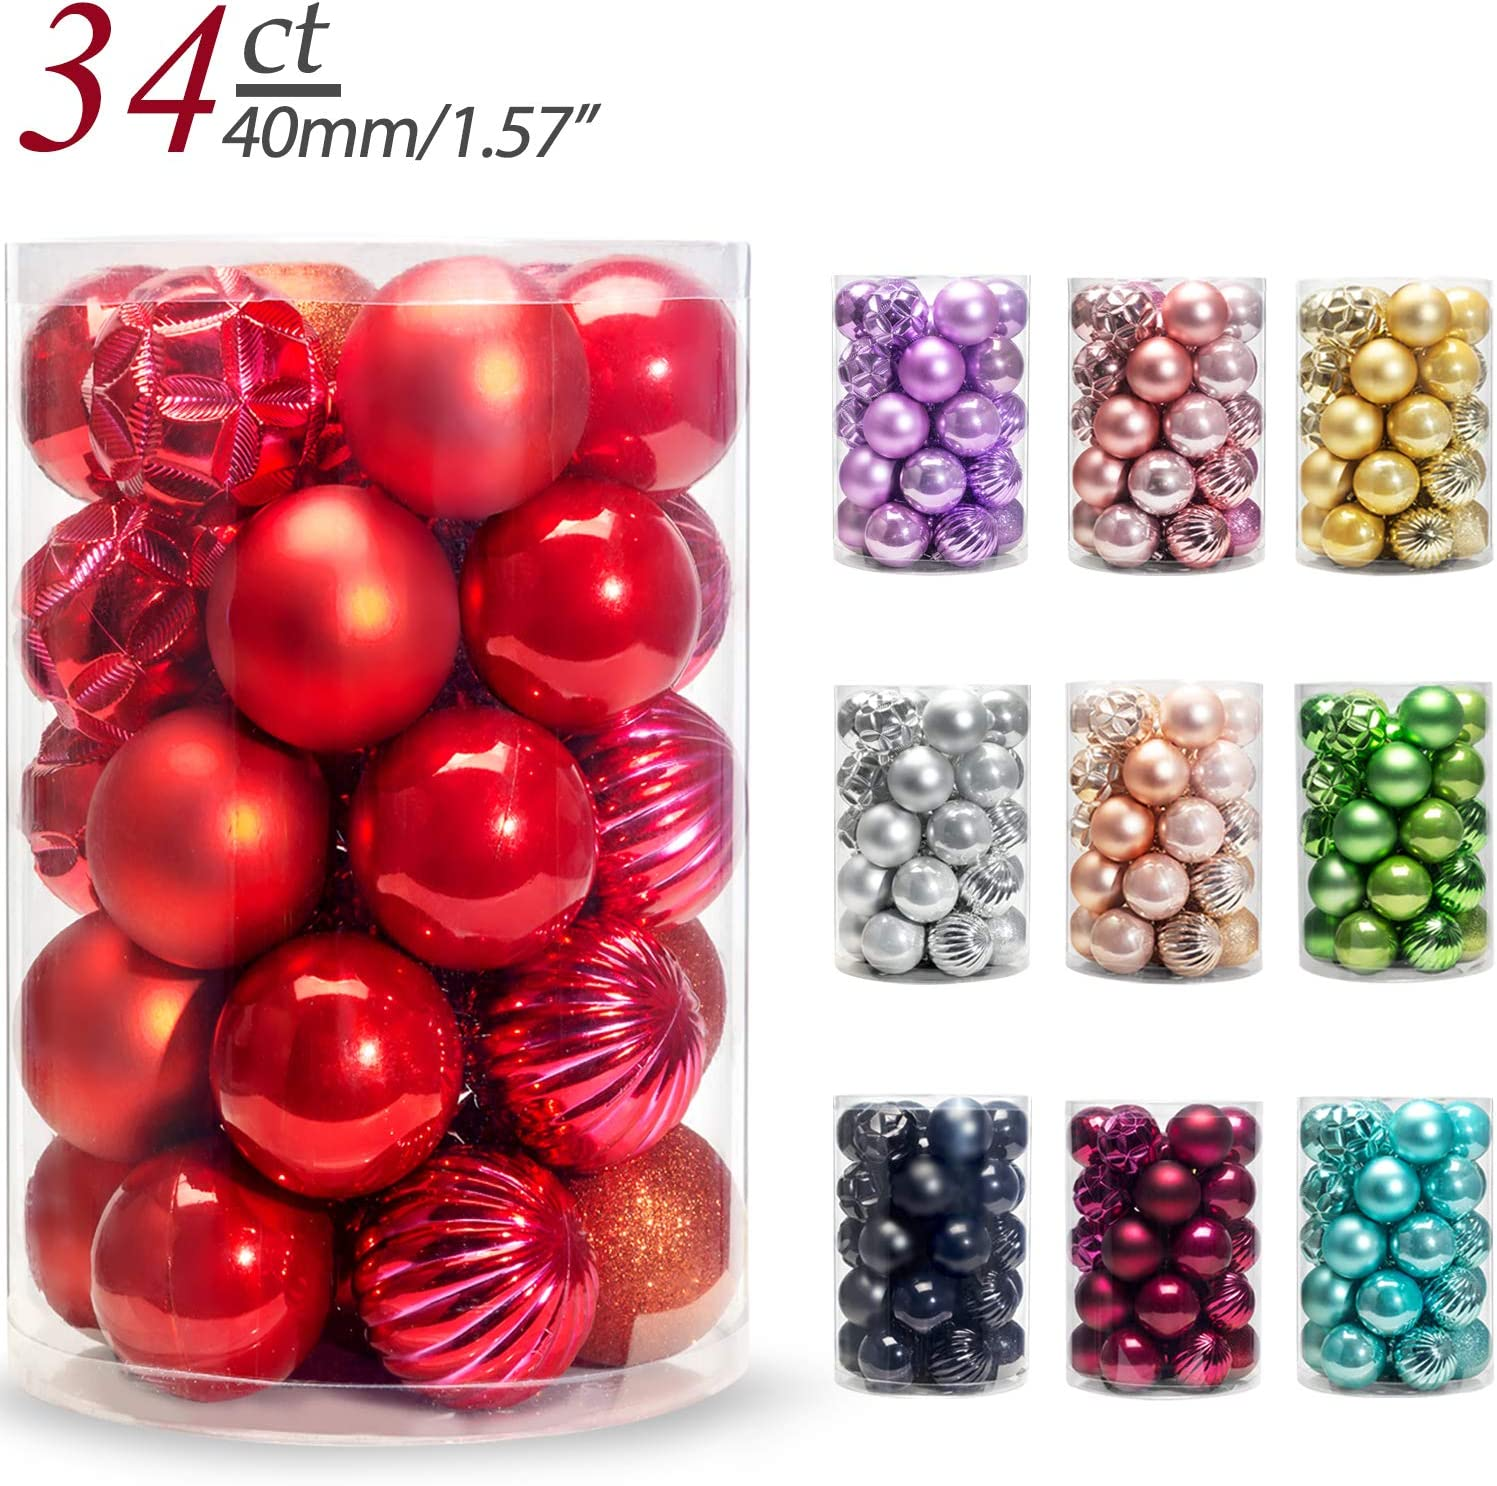 AMS Christmas Ball Mini Ornaments Party Decoration Shatterproof Festival Widgets Pendant Hanging Pack of 34pcs (40mm, Red)